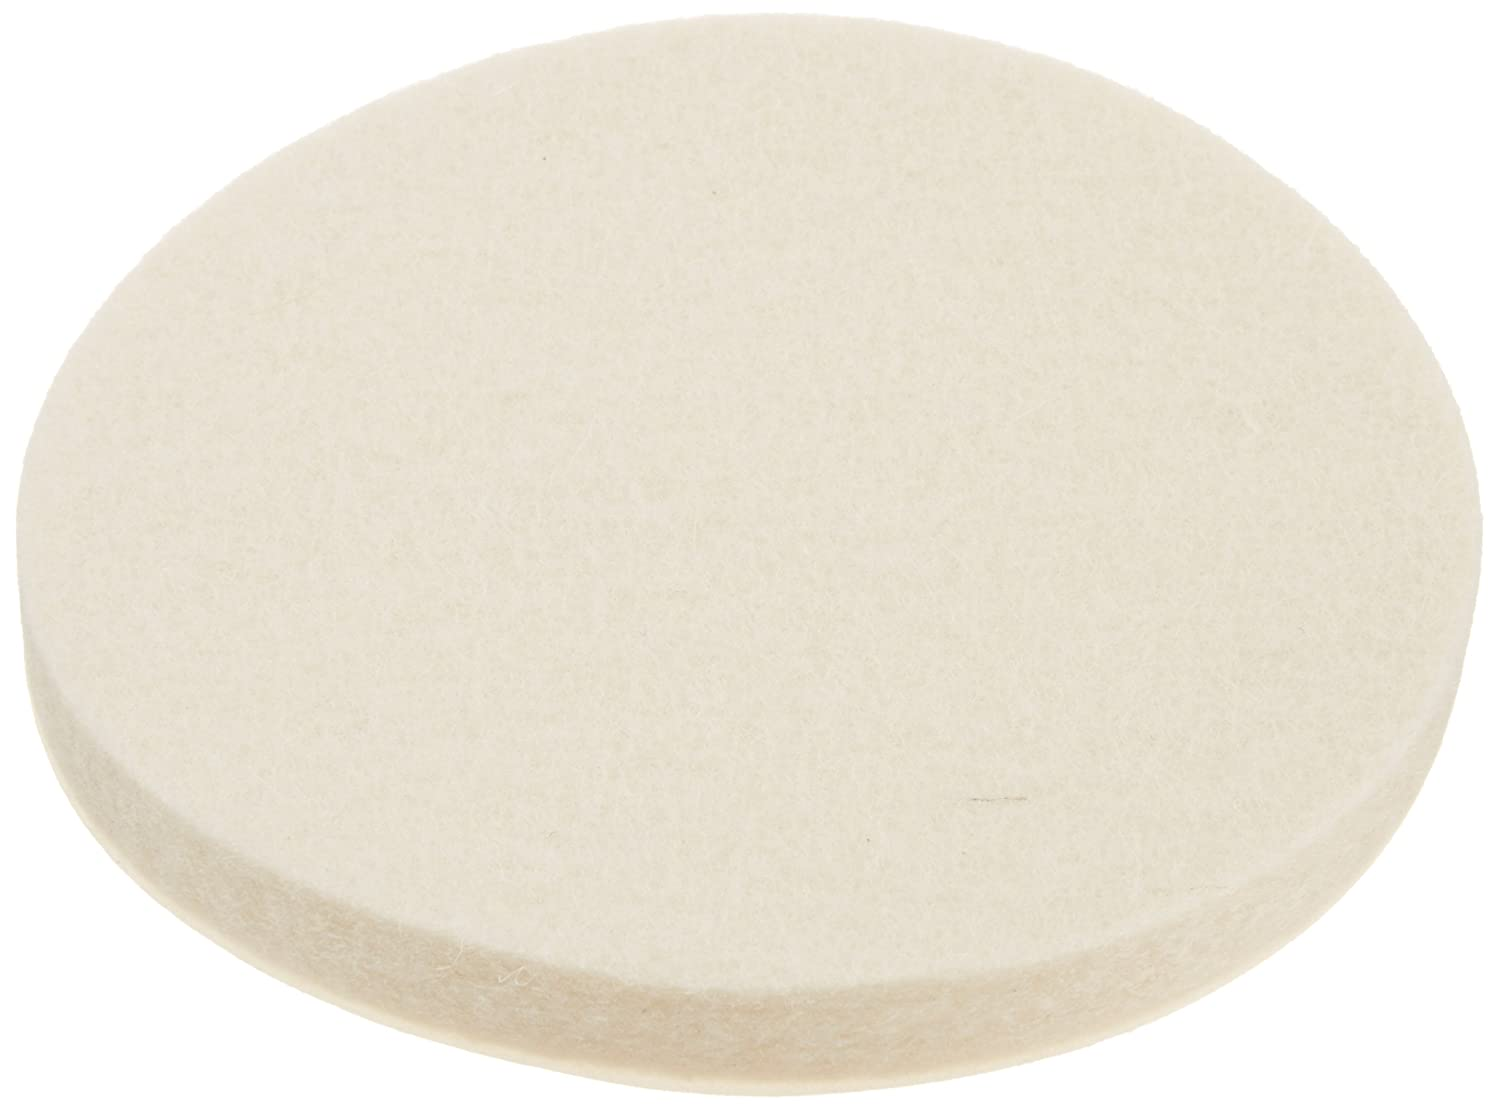 Grade F1 Pressed Wool Felt Disc, White, Meets SAE J314, Adhesive Backed